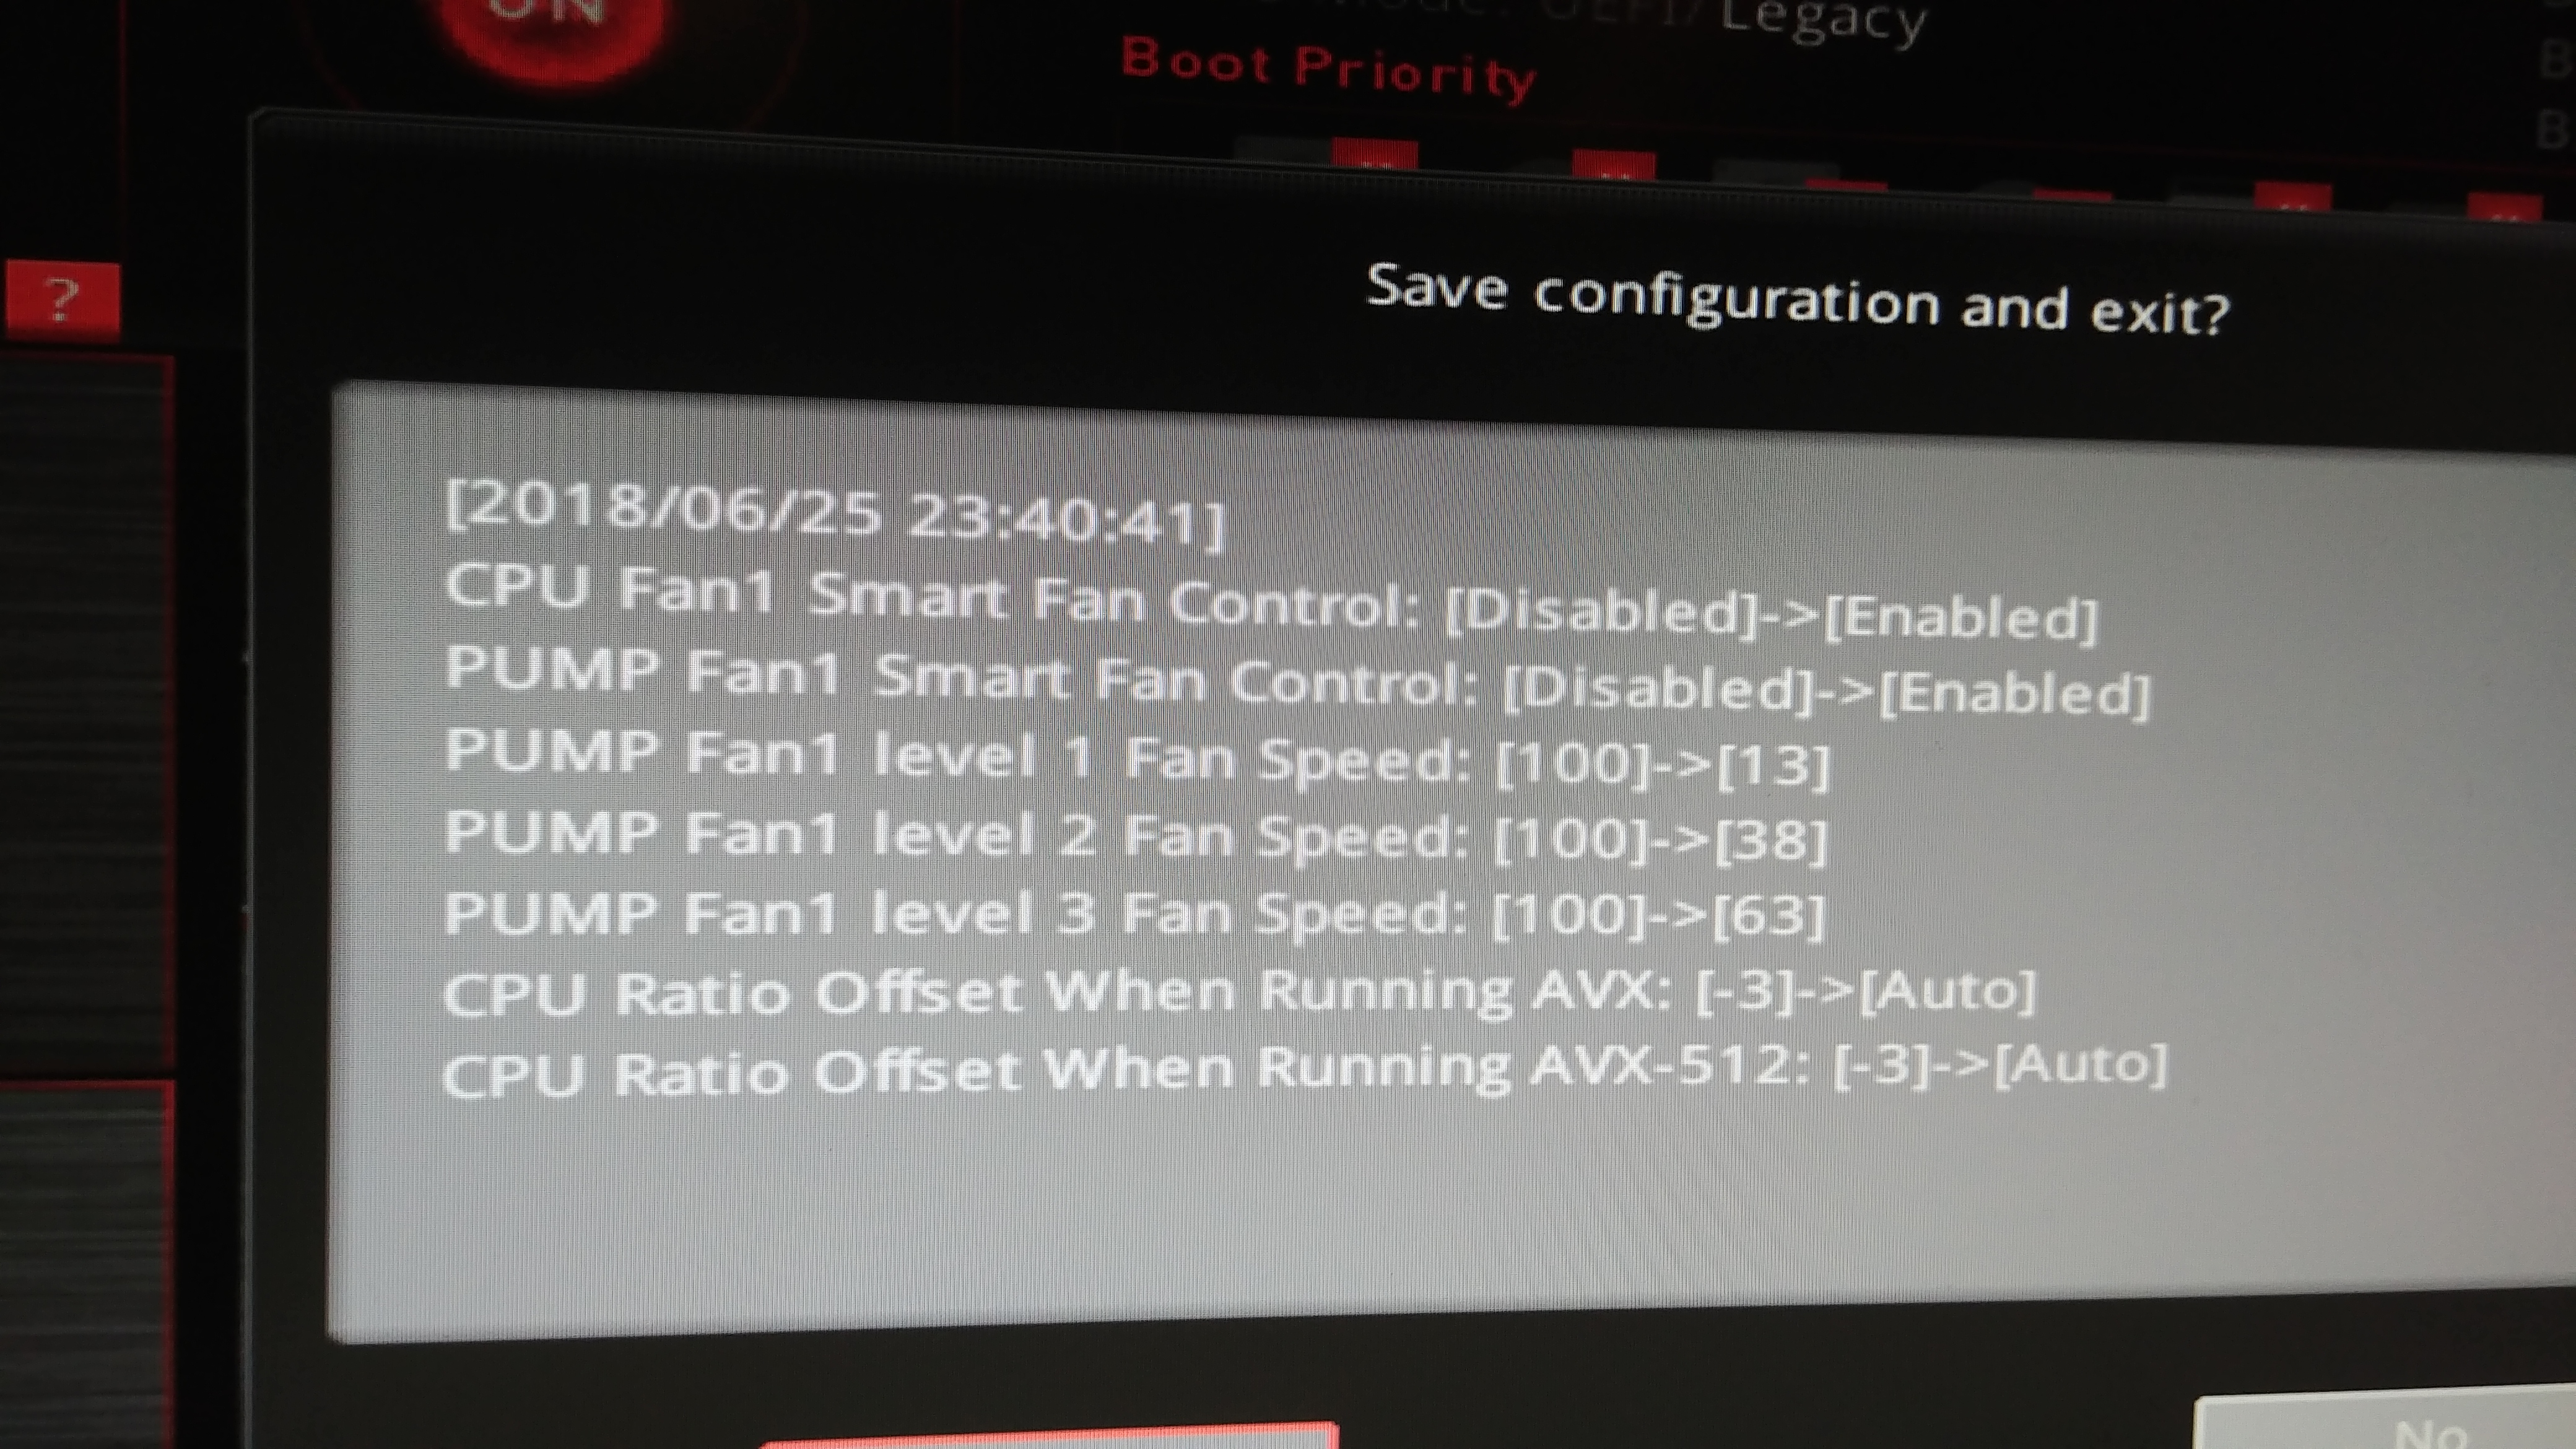 MSI BIOS not updating AIO pump settings - CPUs, Motherboards, and